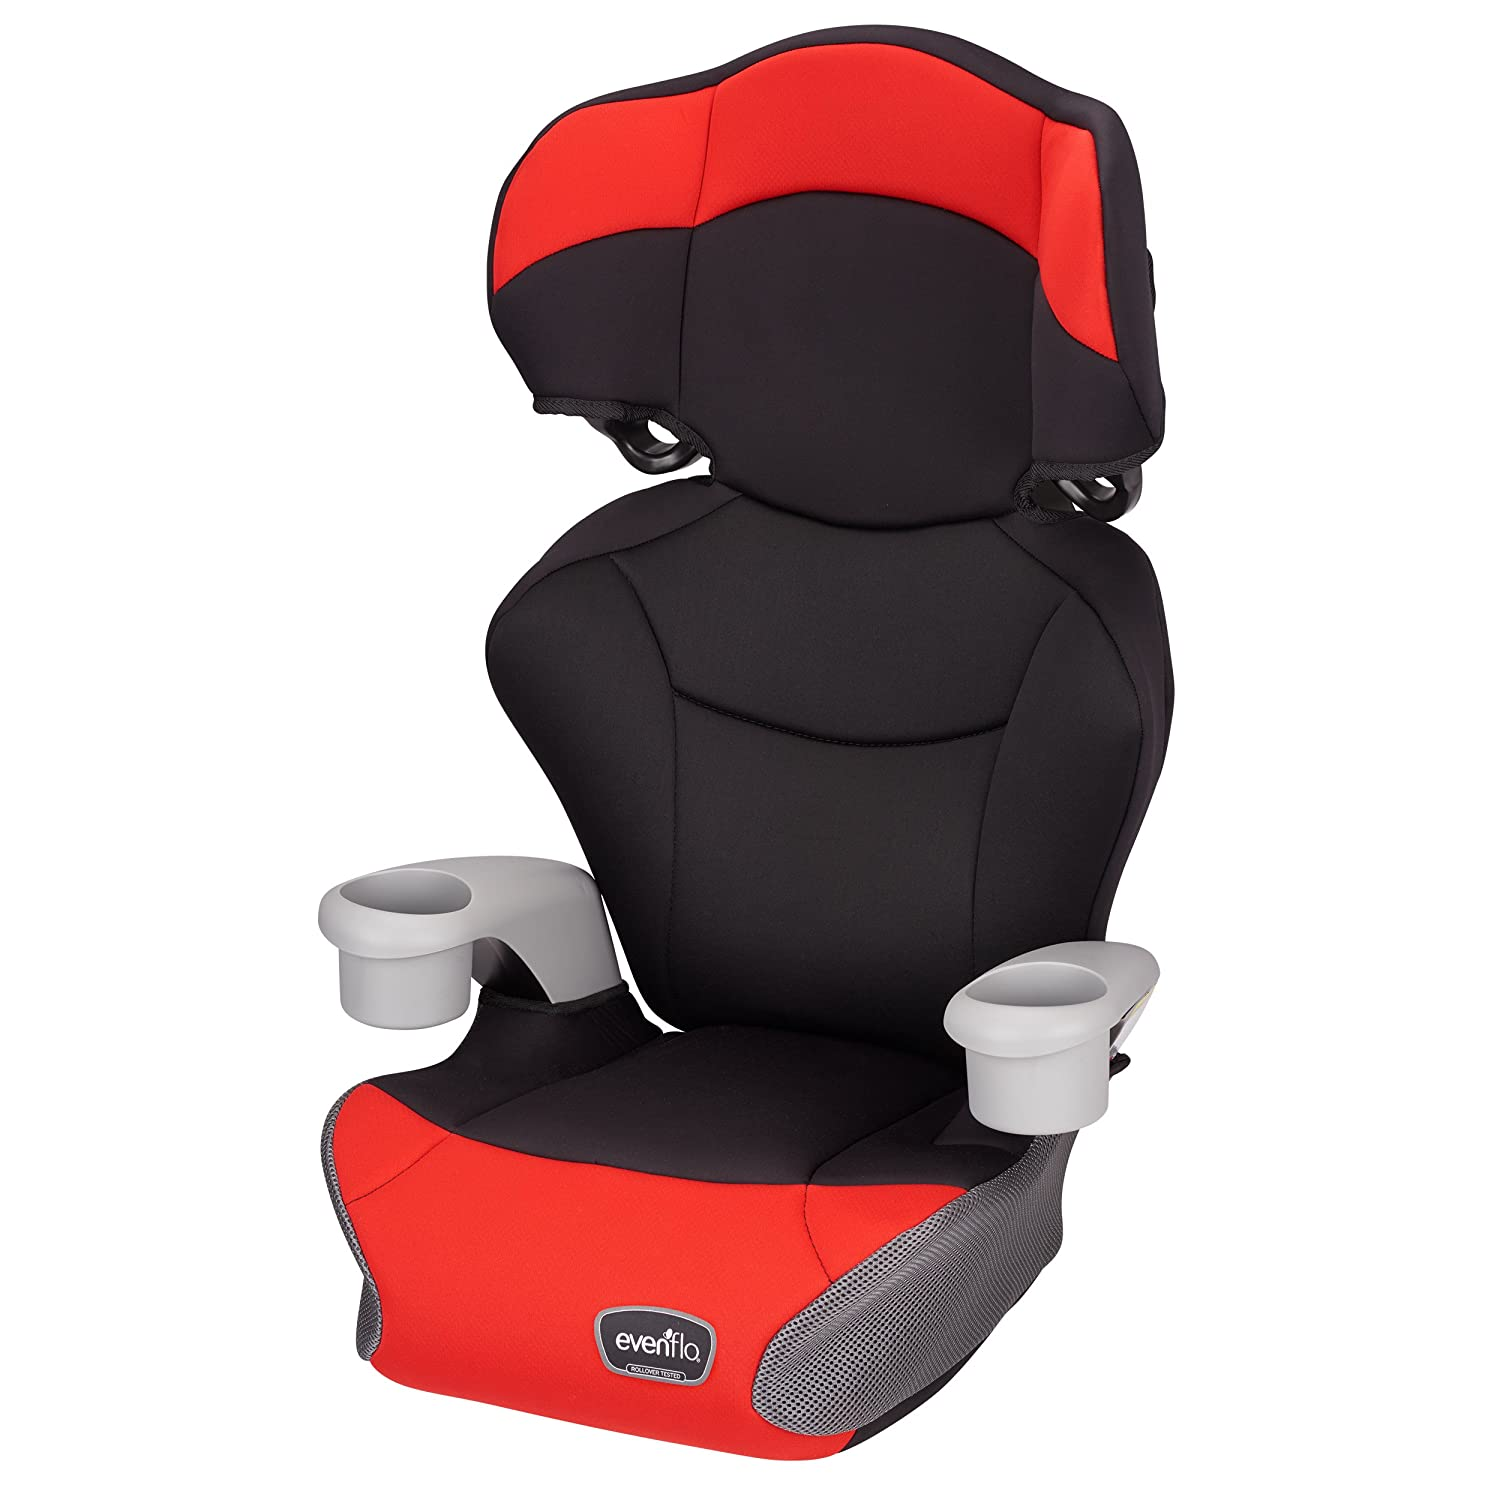 Evenflo Big Kid AMP High Back Booster Car Seat, Cardinal Red 36512102